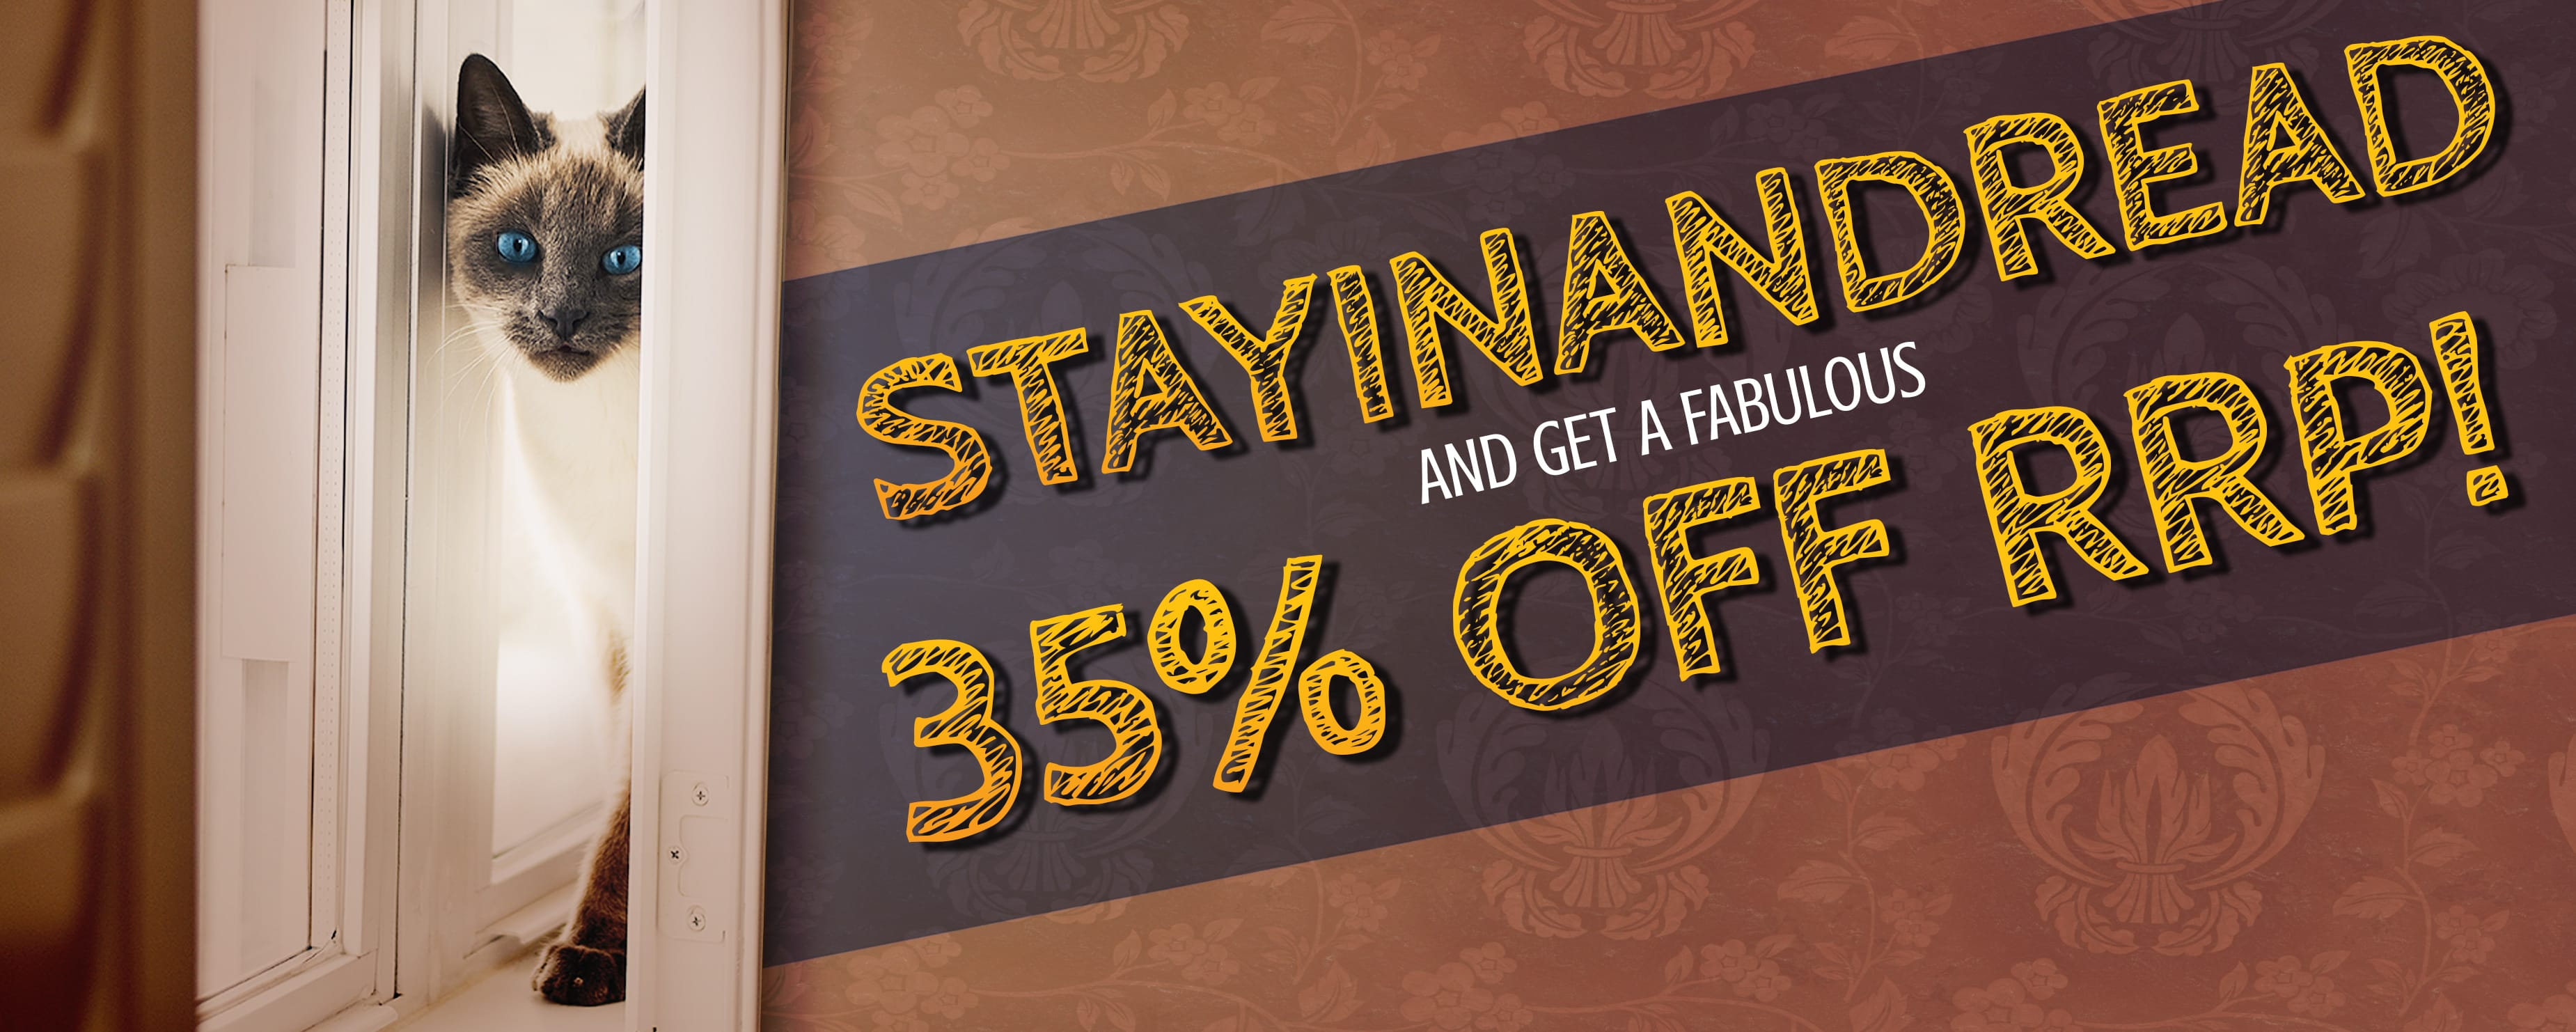 STAYINANDREAD with 35% off